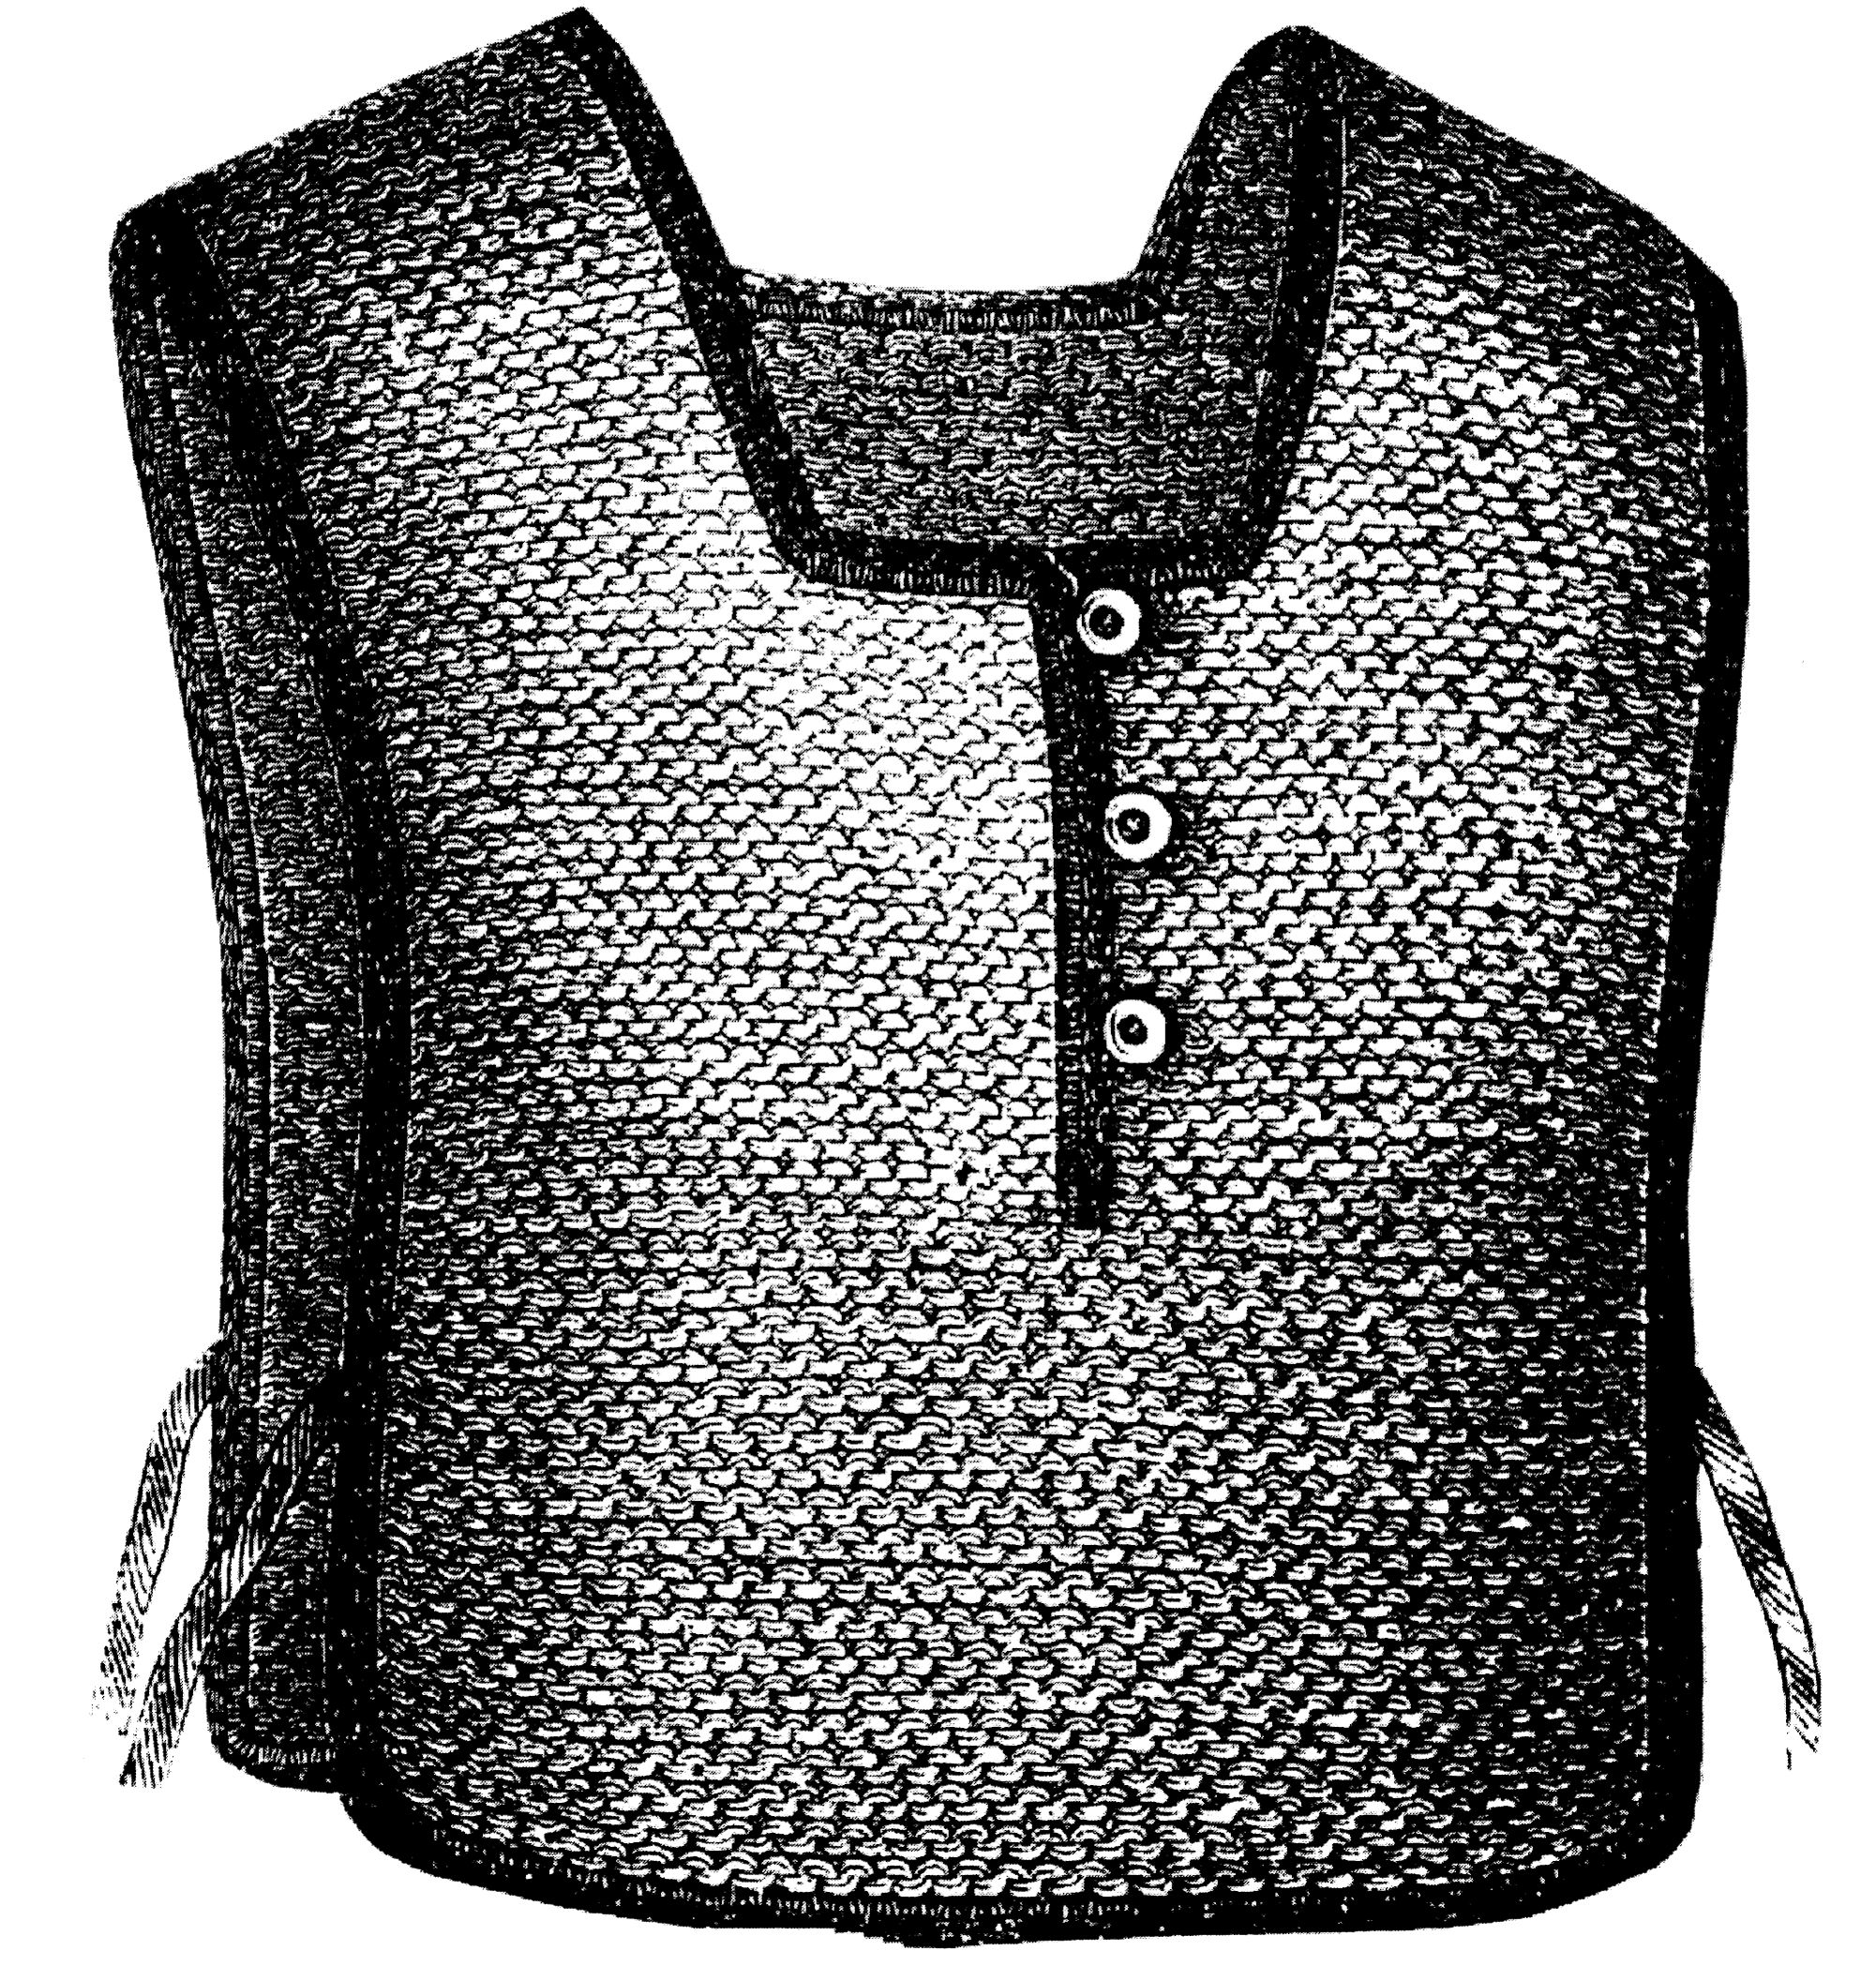 Sewing Pattern: 1876 Knitted & Crochet Chest Protector Pattern